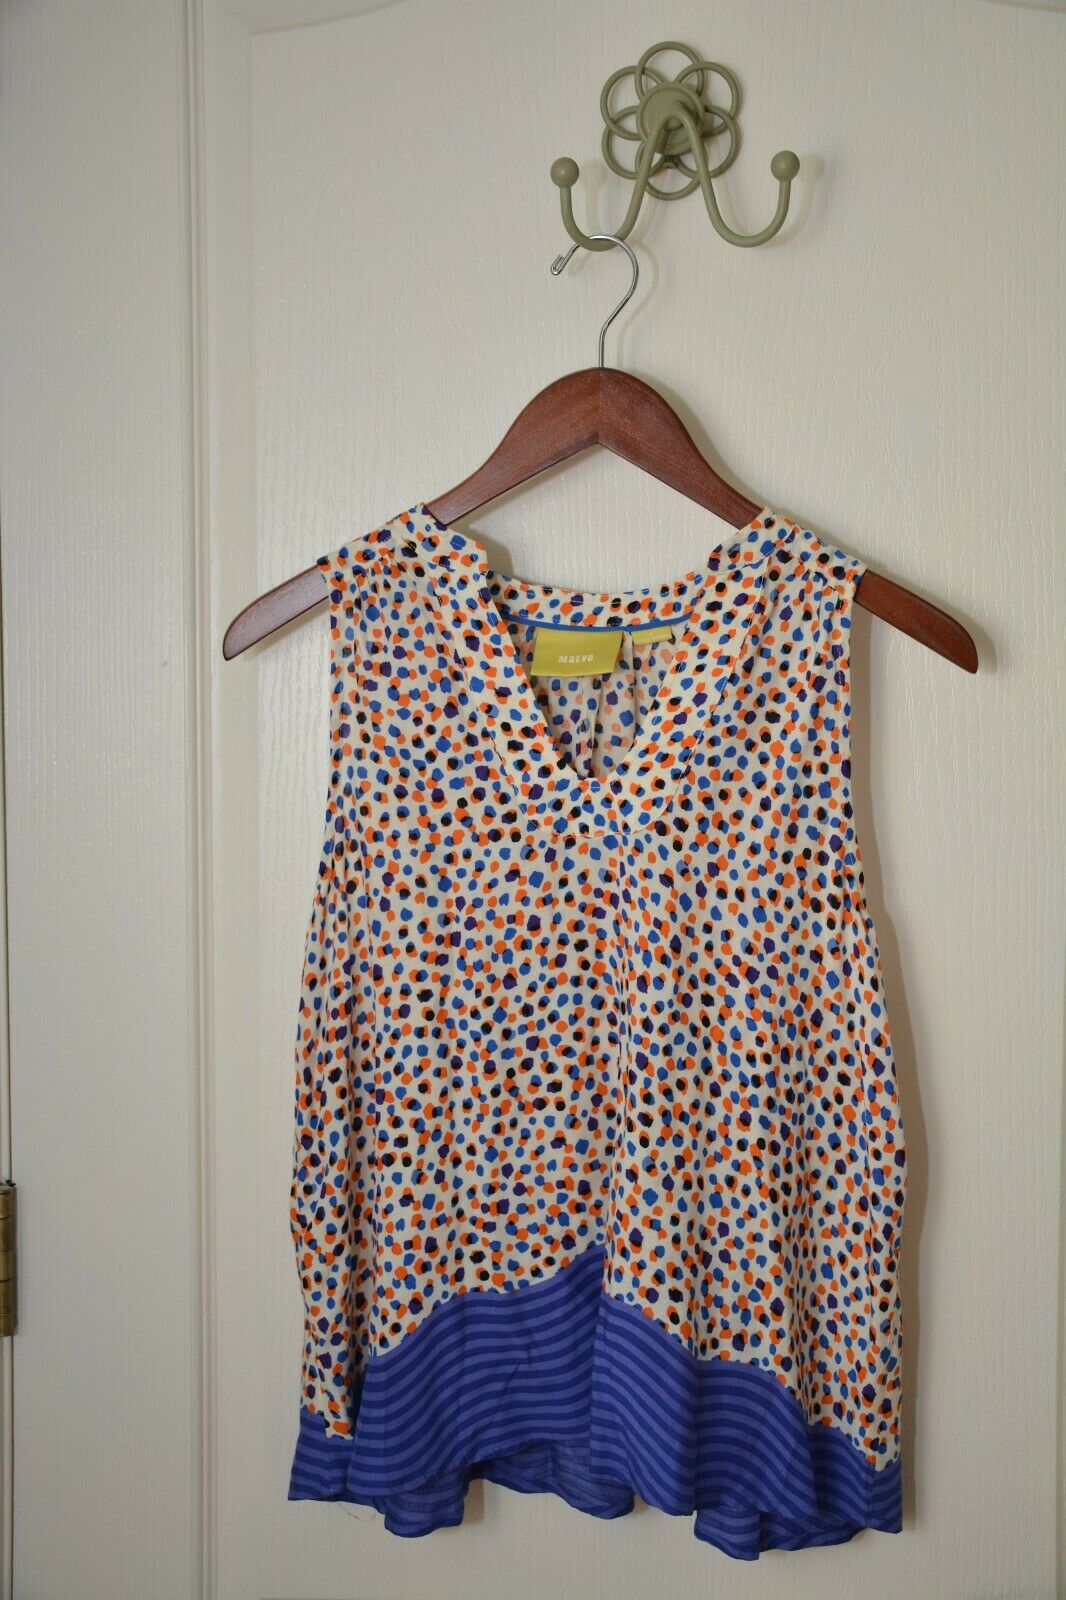 Anthropologie Maeve Sleeveless Polka Dot Blouse Size 4